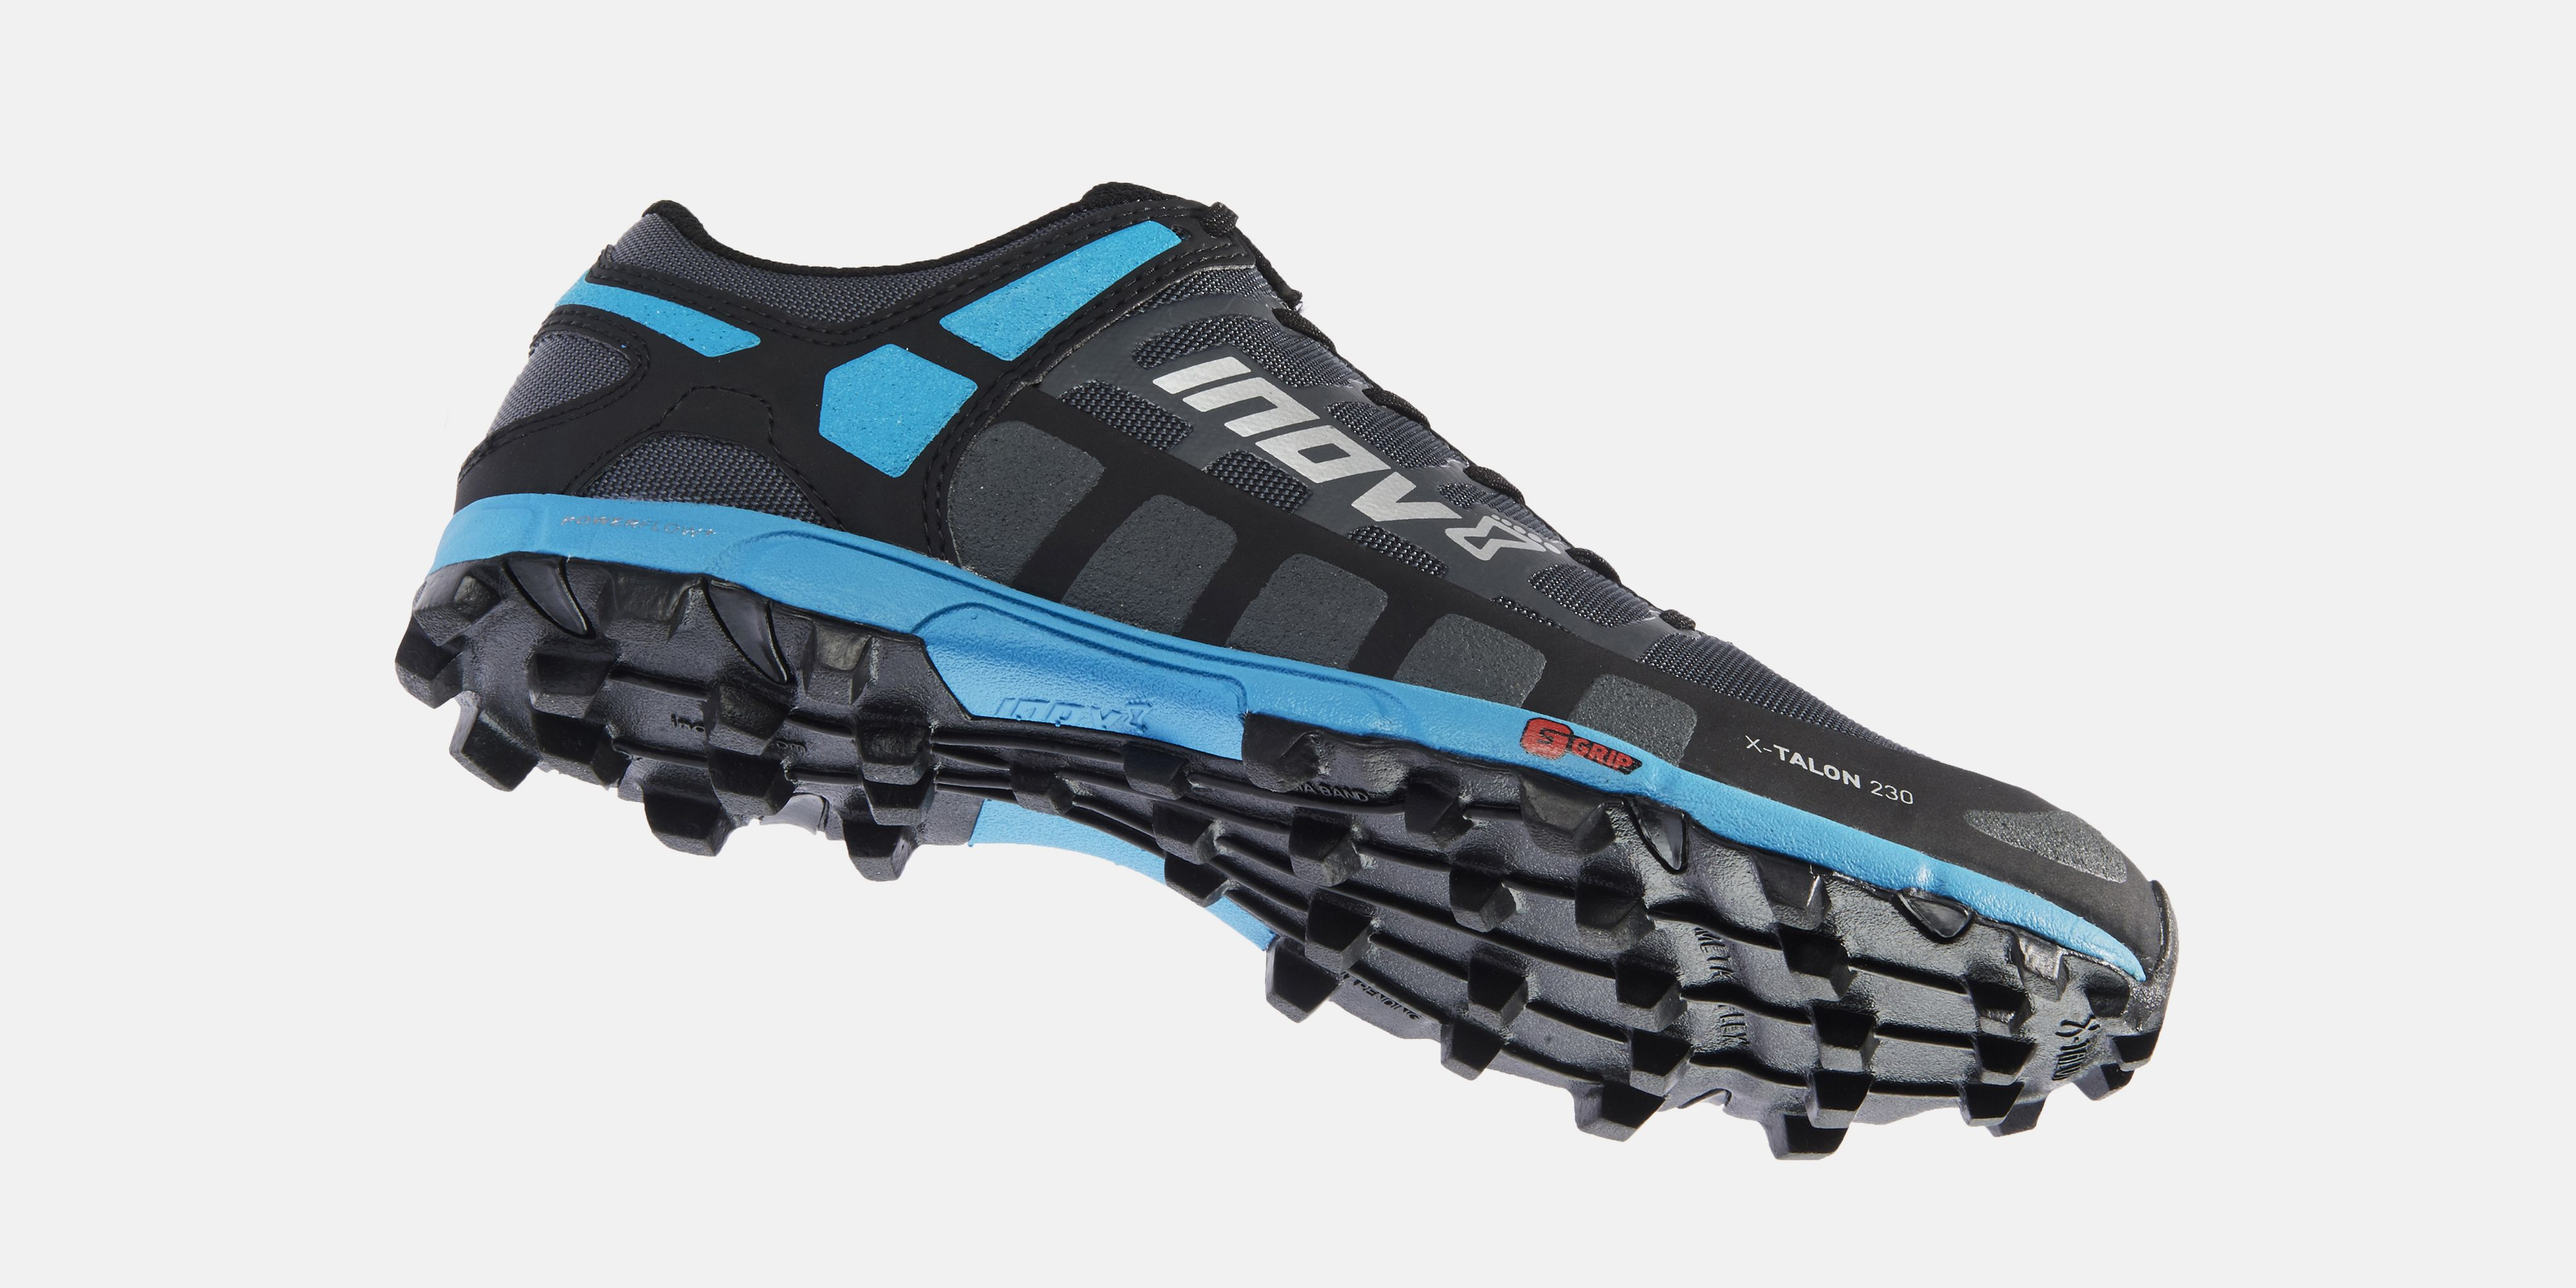 cheap for discount 78a96 6ae73 2018 Inov-8 X-Talon 230 Review - Best Trail Shoes of 2018